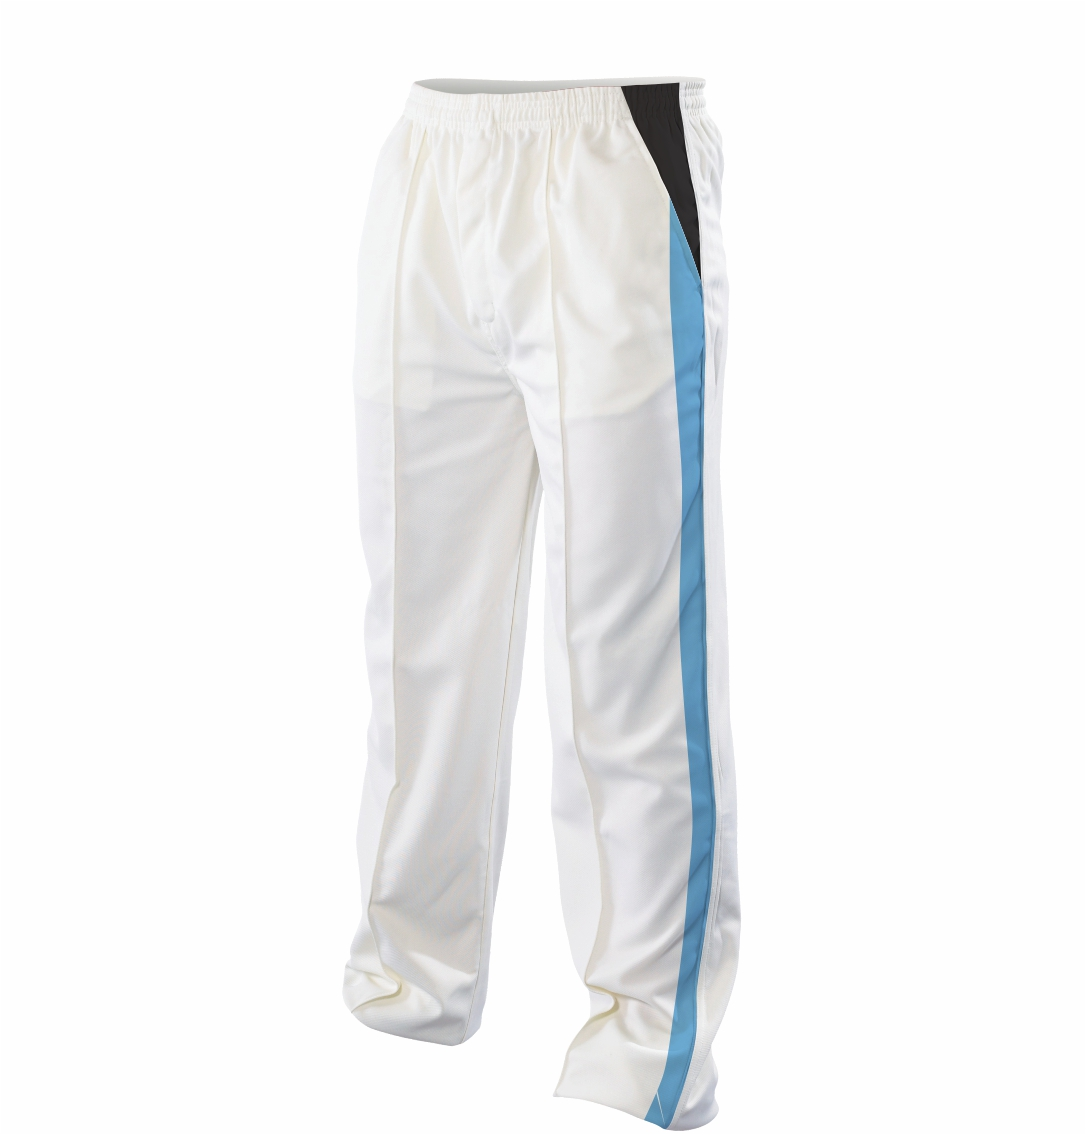 Panelled Zuco pants - J.P